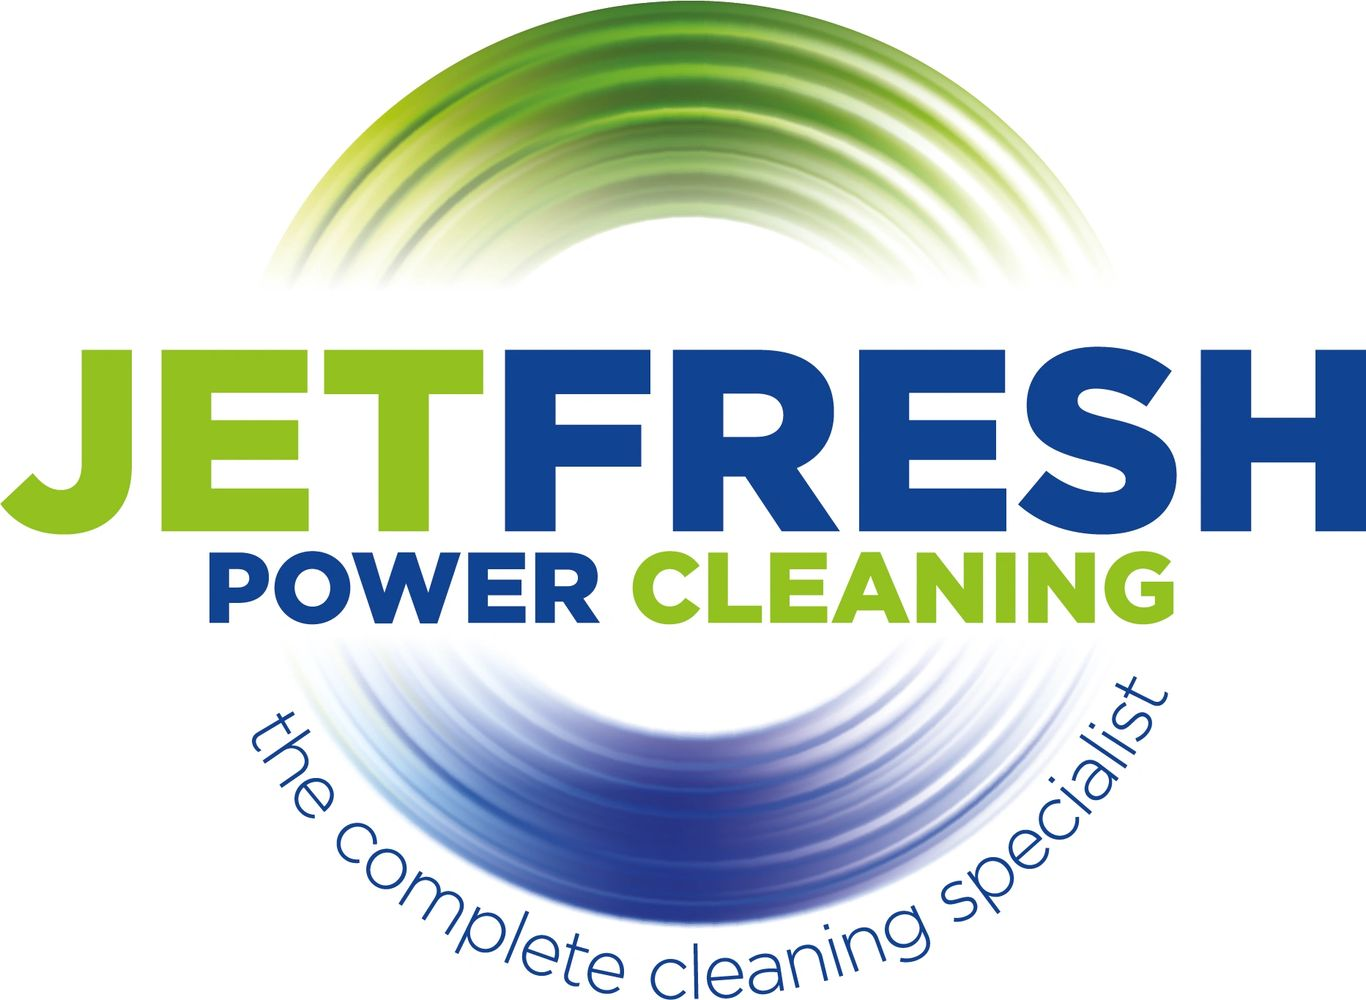 jetfresh power cleaning logo chesterfield pressure washing